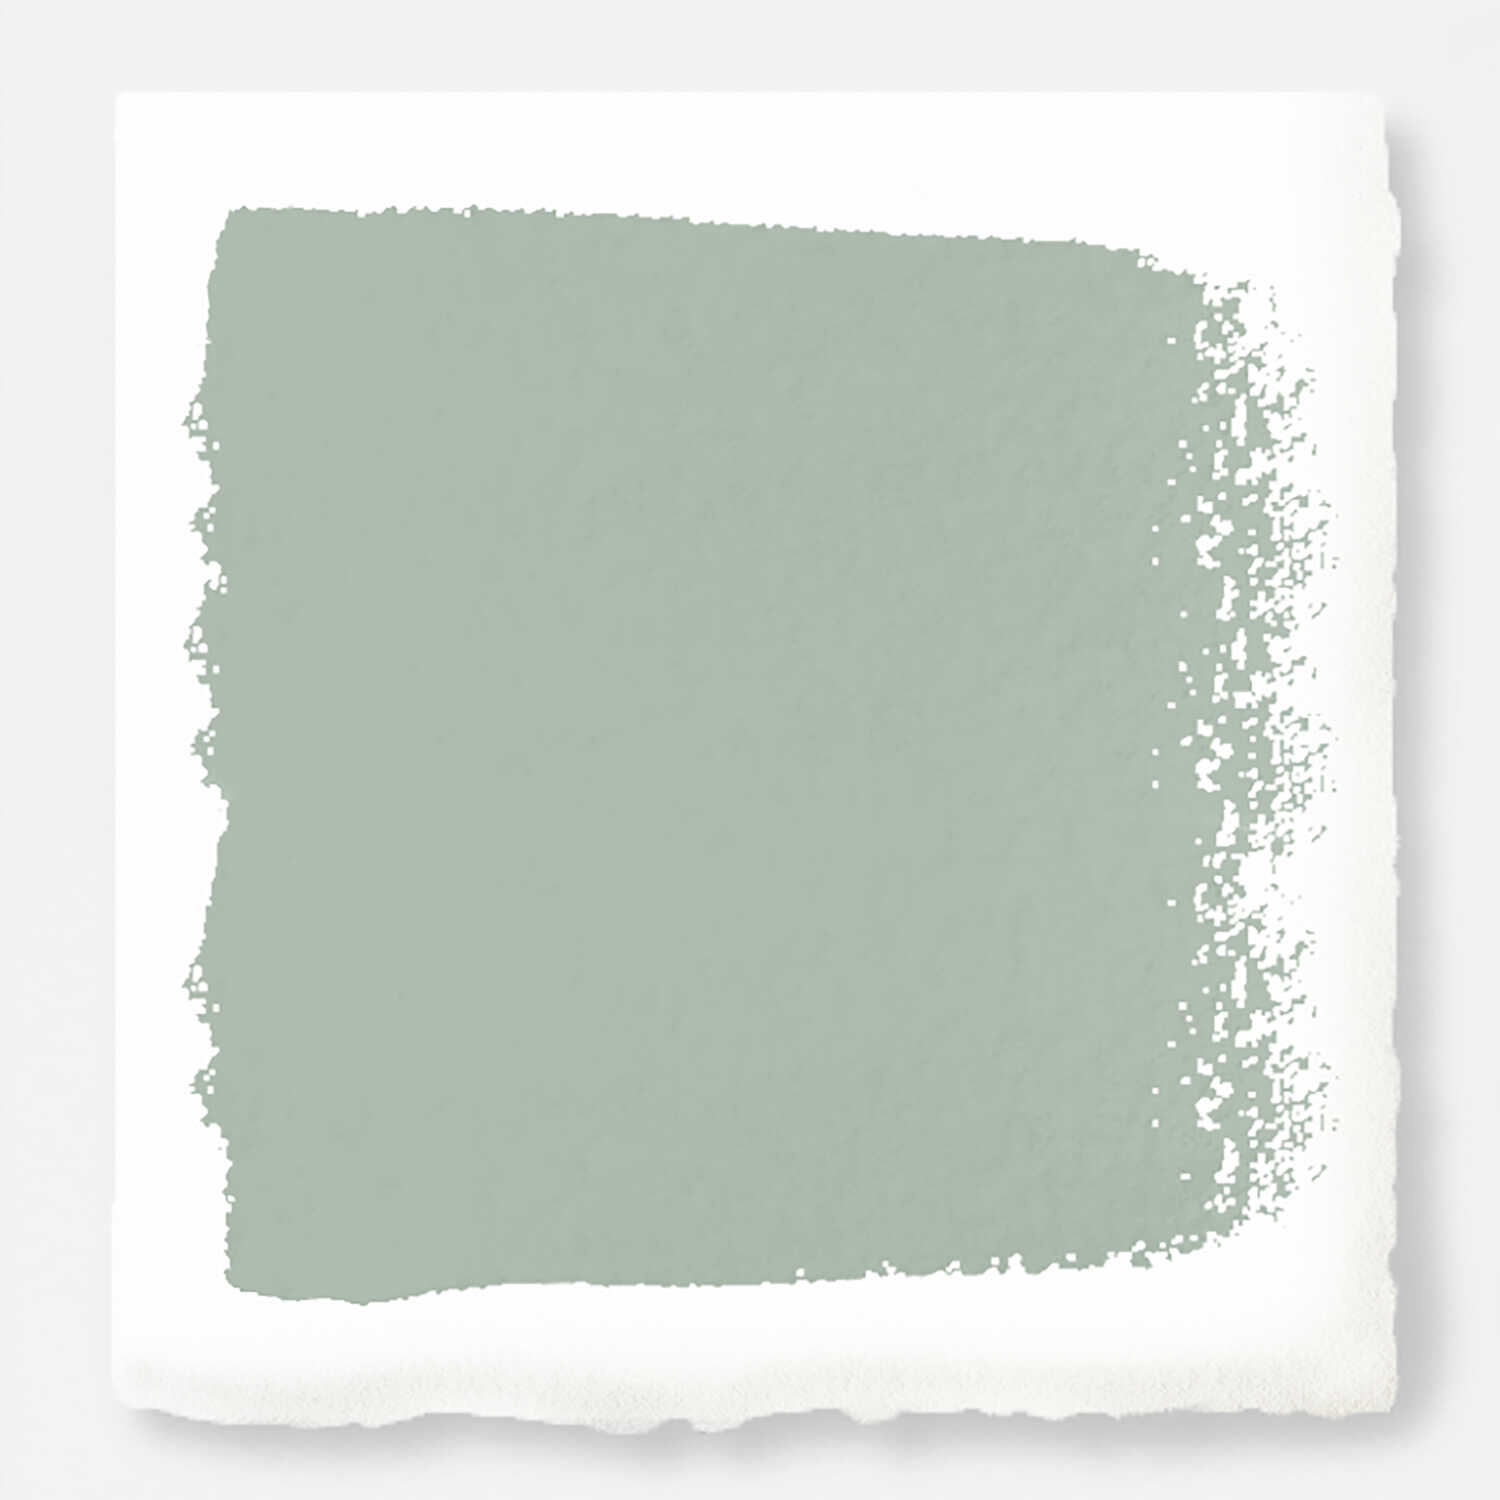 Magnolia Home  Flat  Freshly Cut Stems  Exterior Paint and Primer  1 gal.